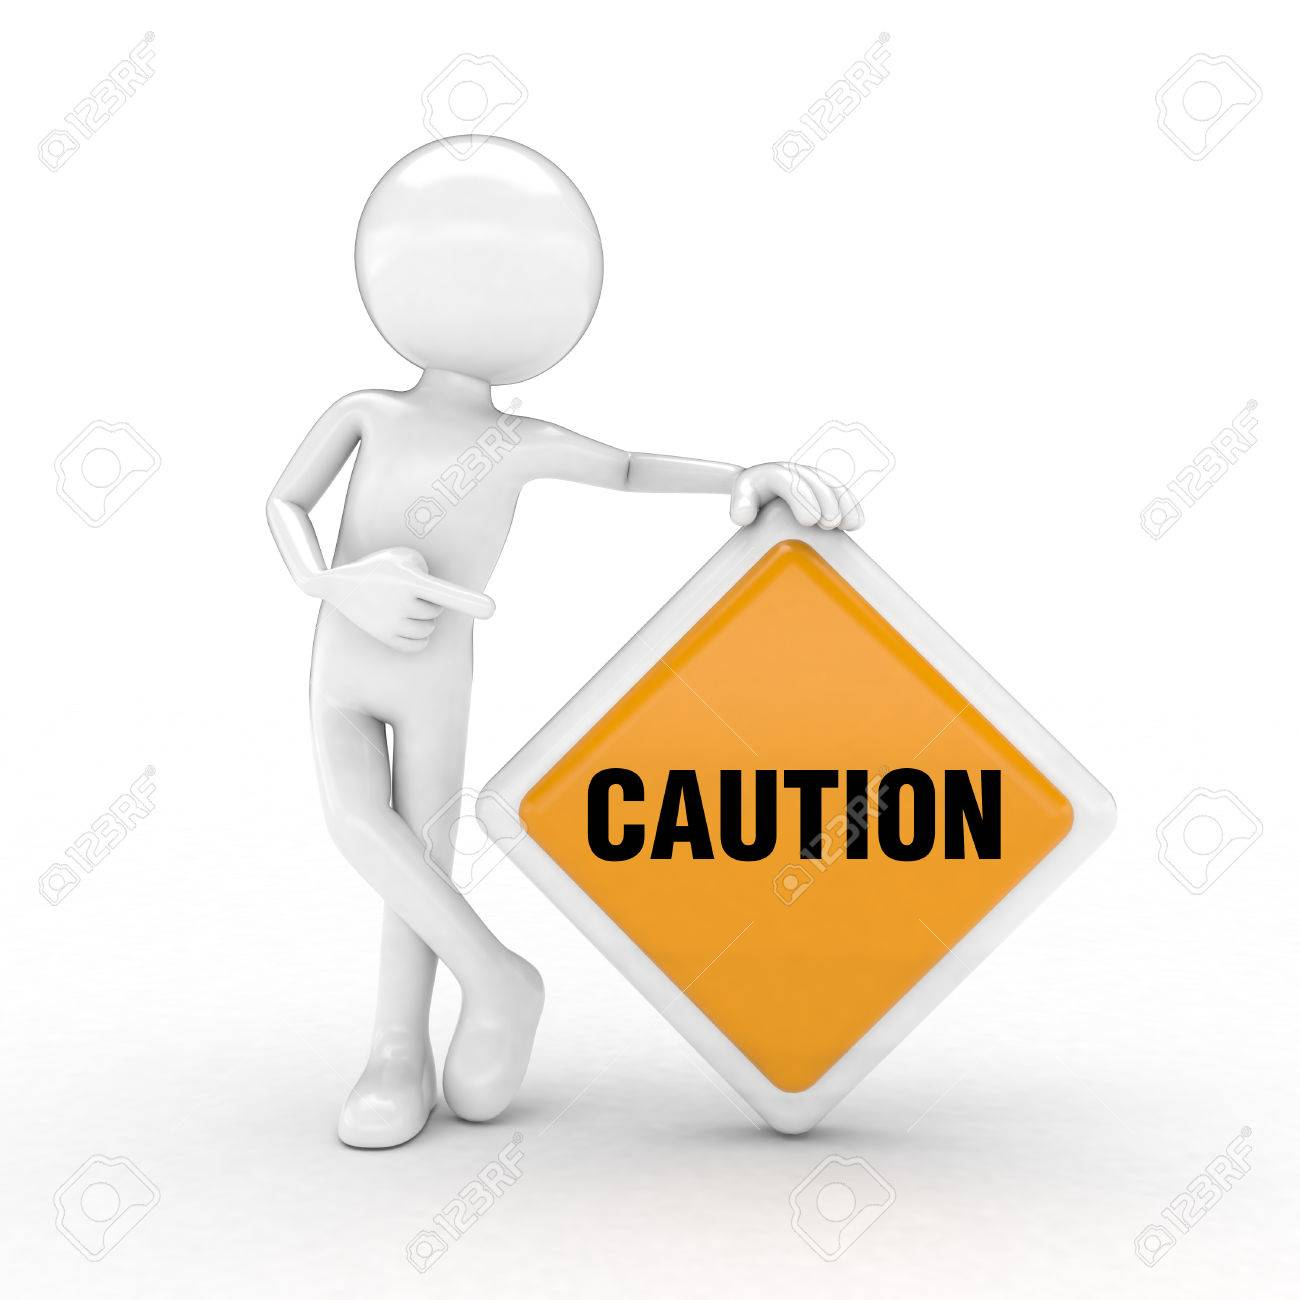 caution text highlighted by the sign and the man with the visual images. Stock Photo - 52743931